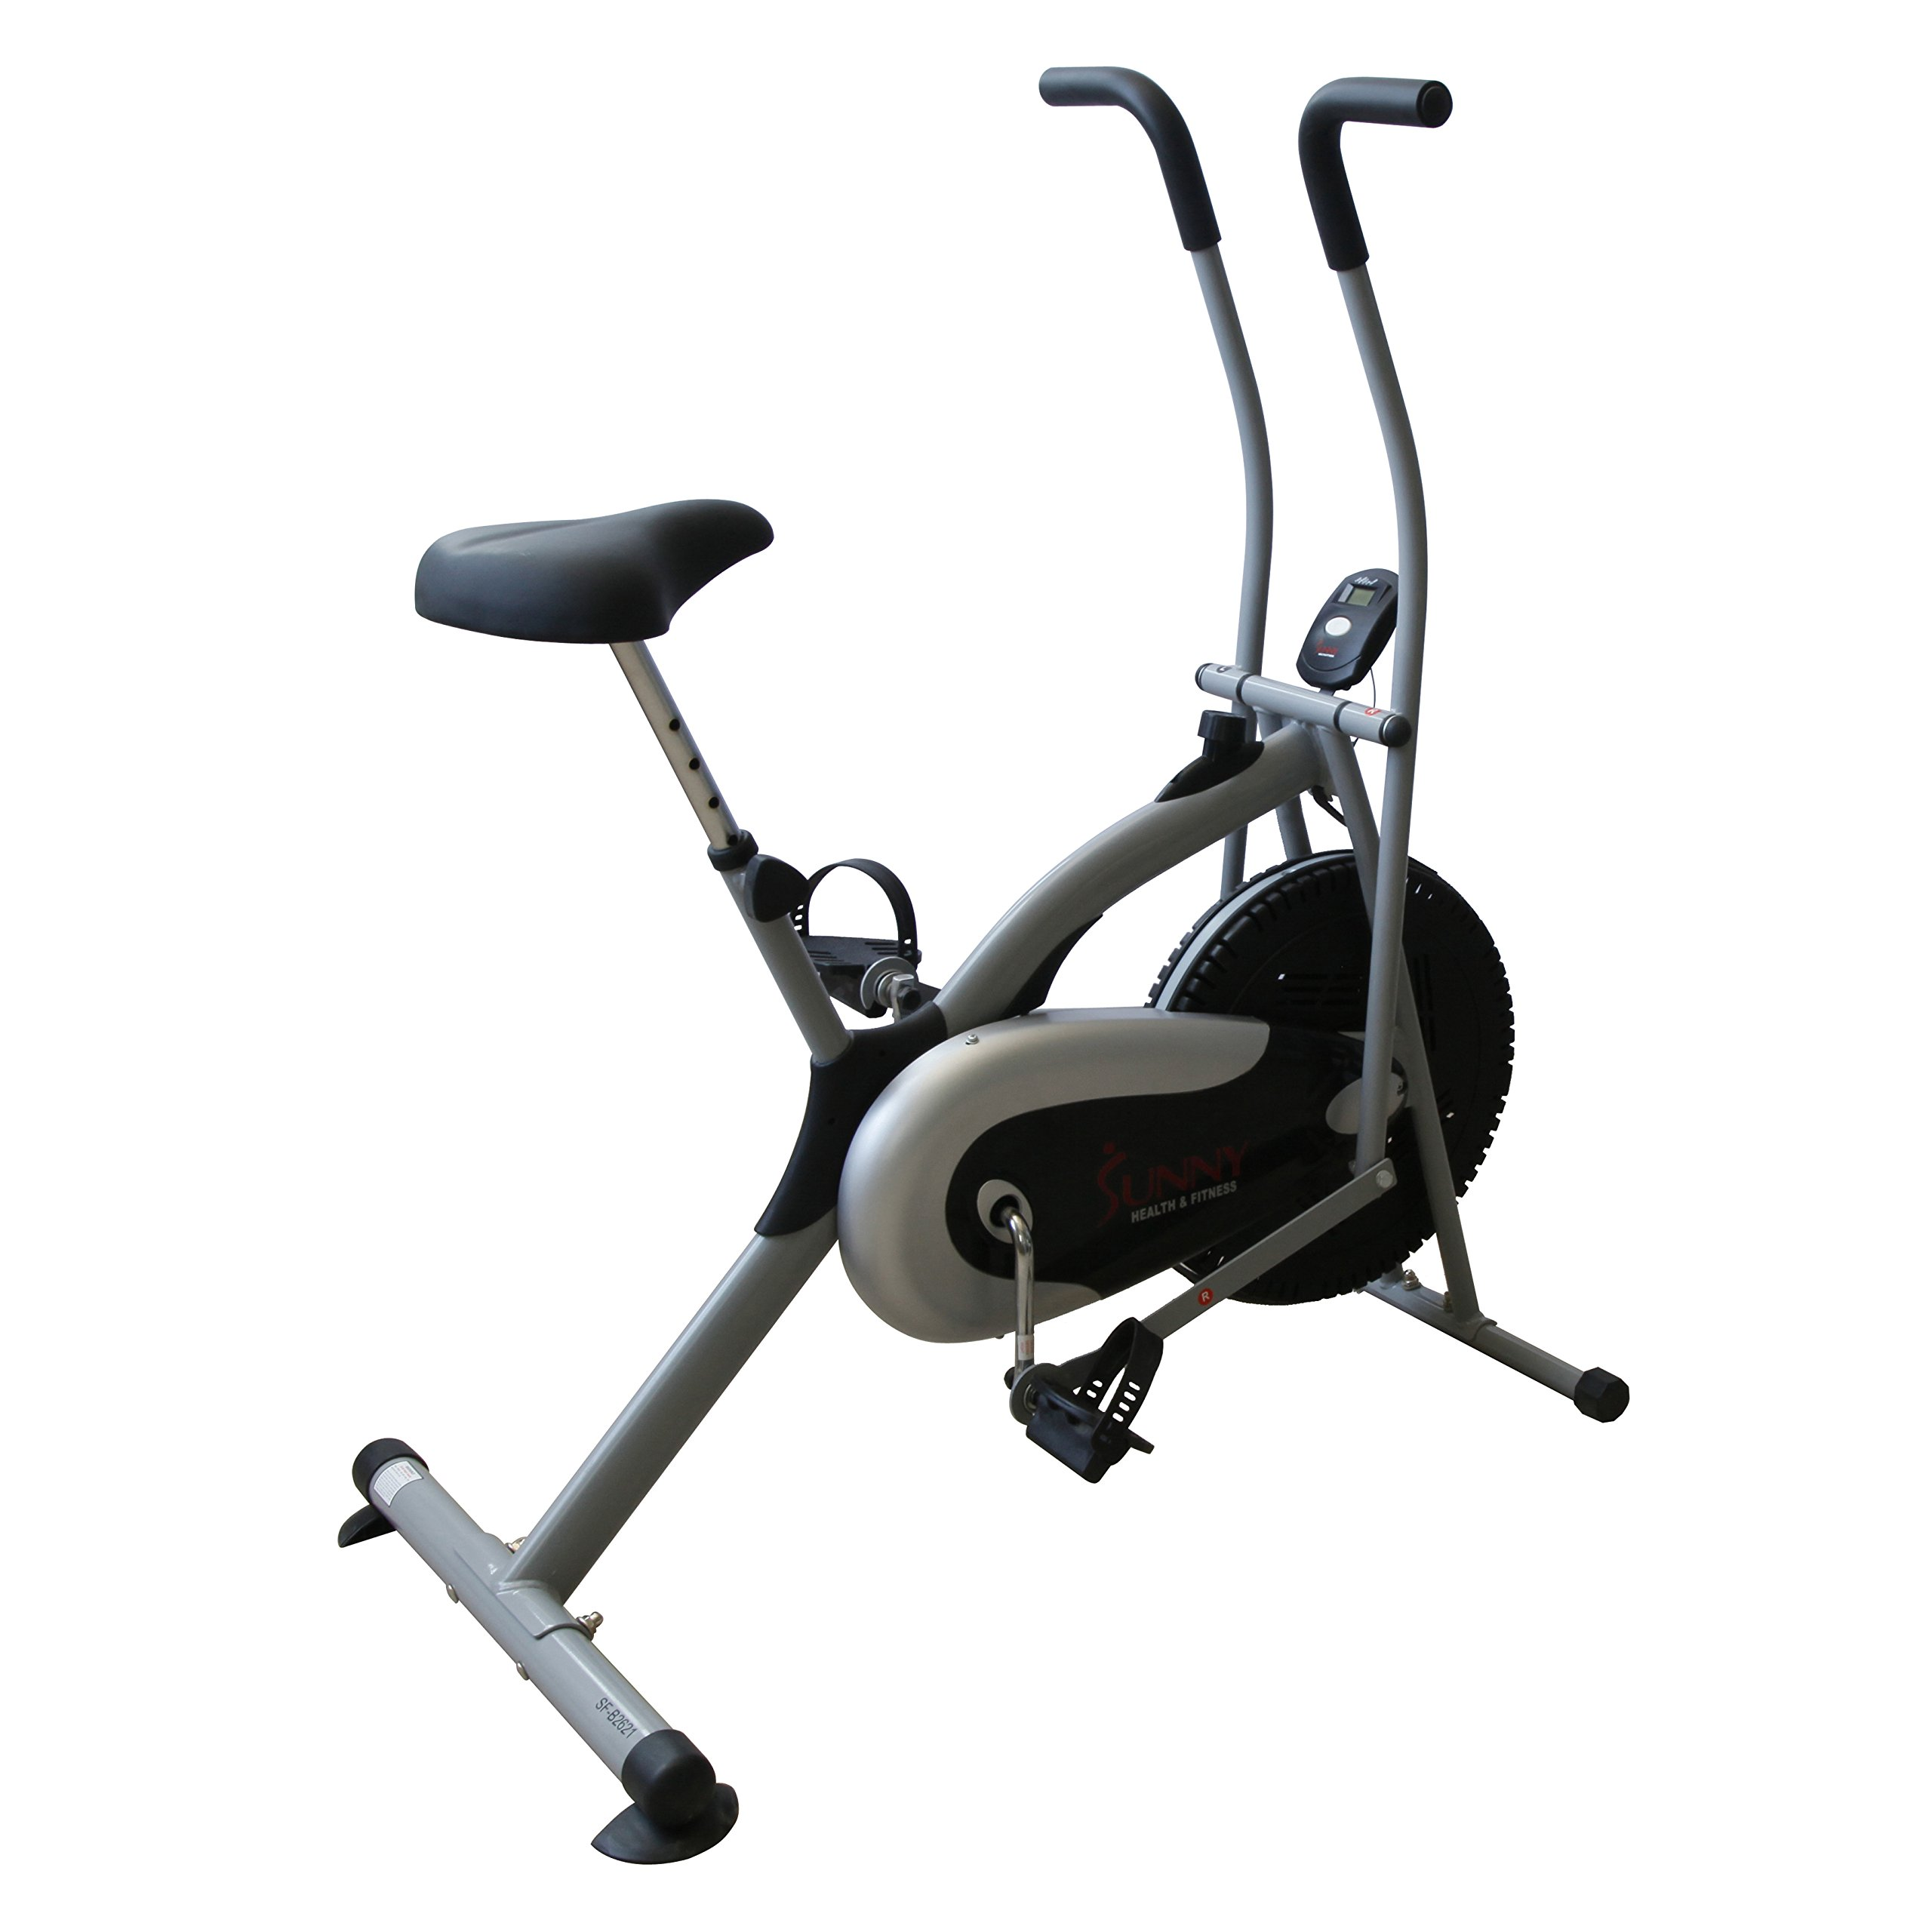 Sunny Health & Fitness SF-B2621 Cross Training Fan Upright Exercise Bike w/ Arm Exercisers by Sunny Health & Fitness (Image #3)